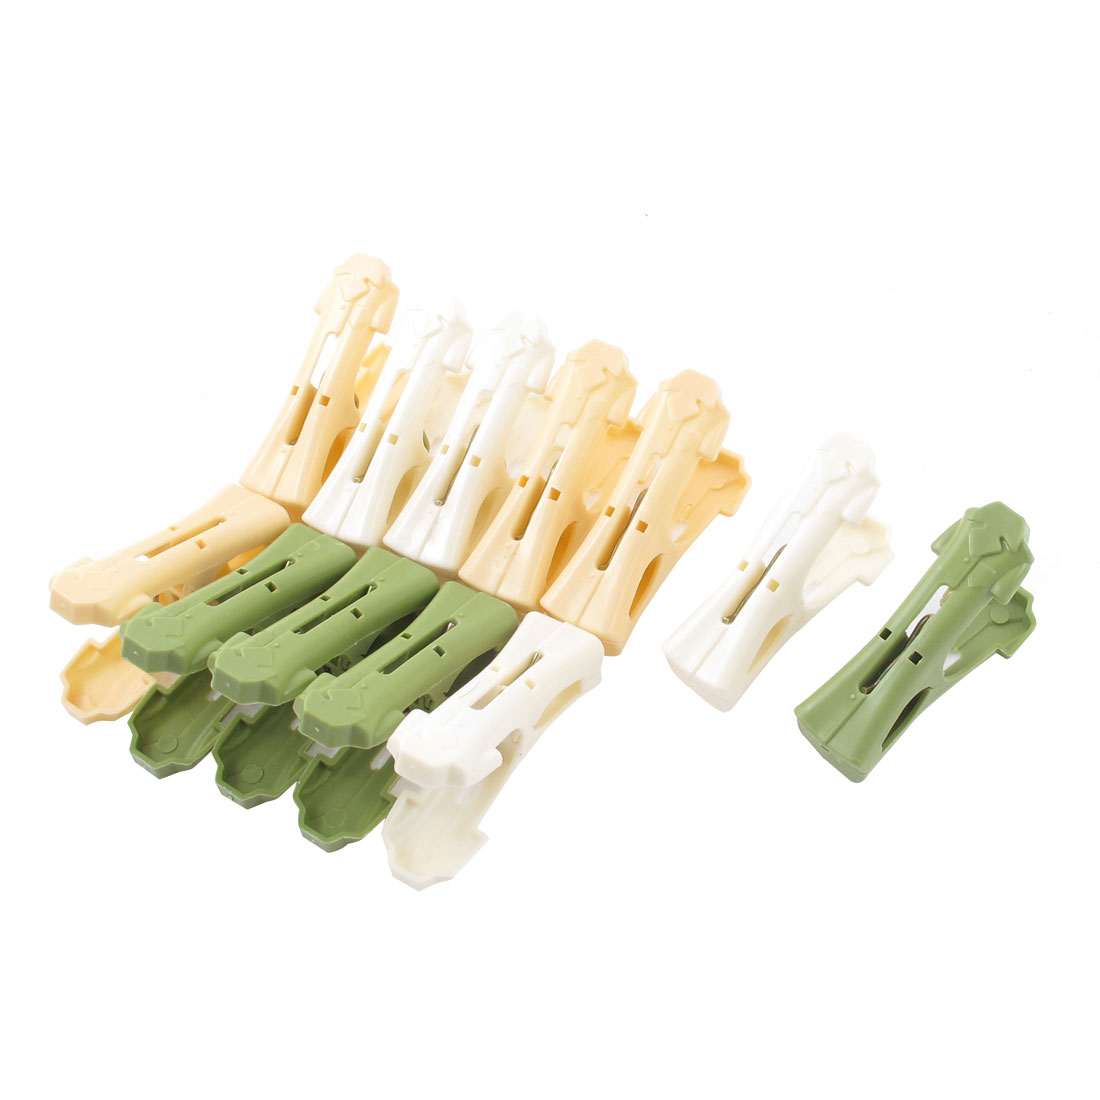 12 Pcs Household Nonslip Multipurpose Clothing Clothespins Clips Multicolour